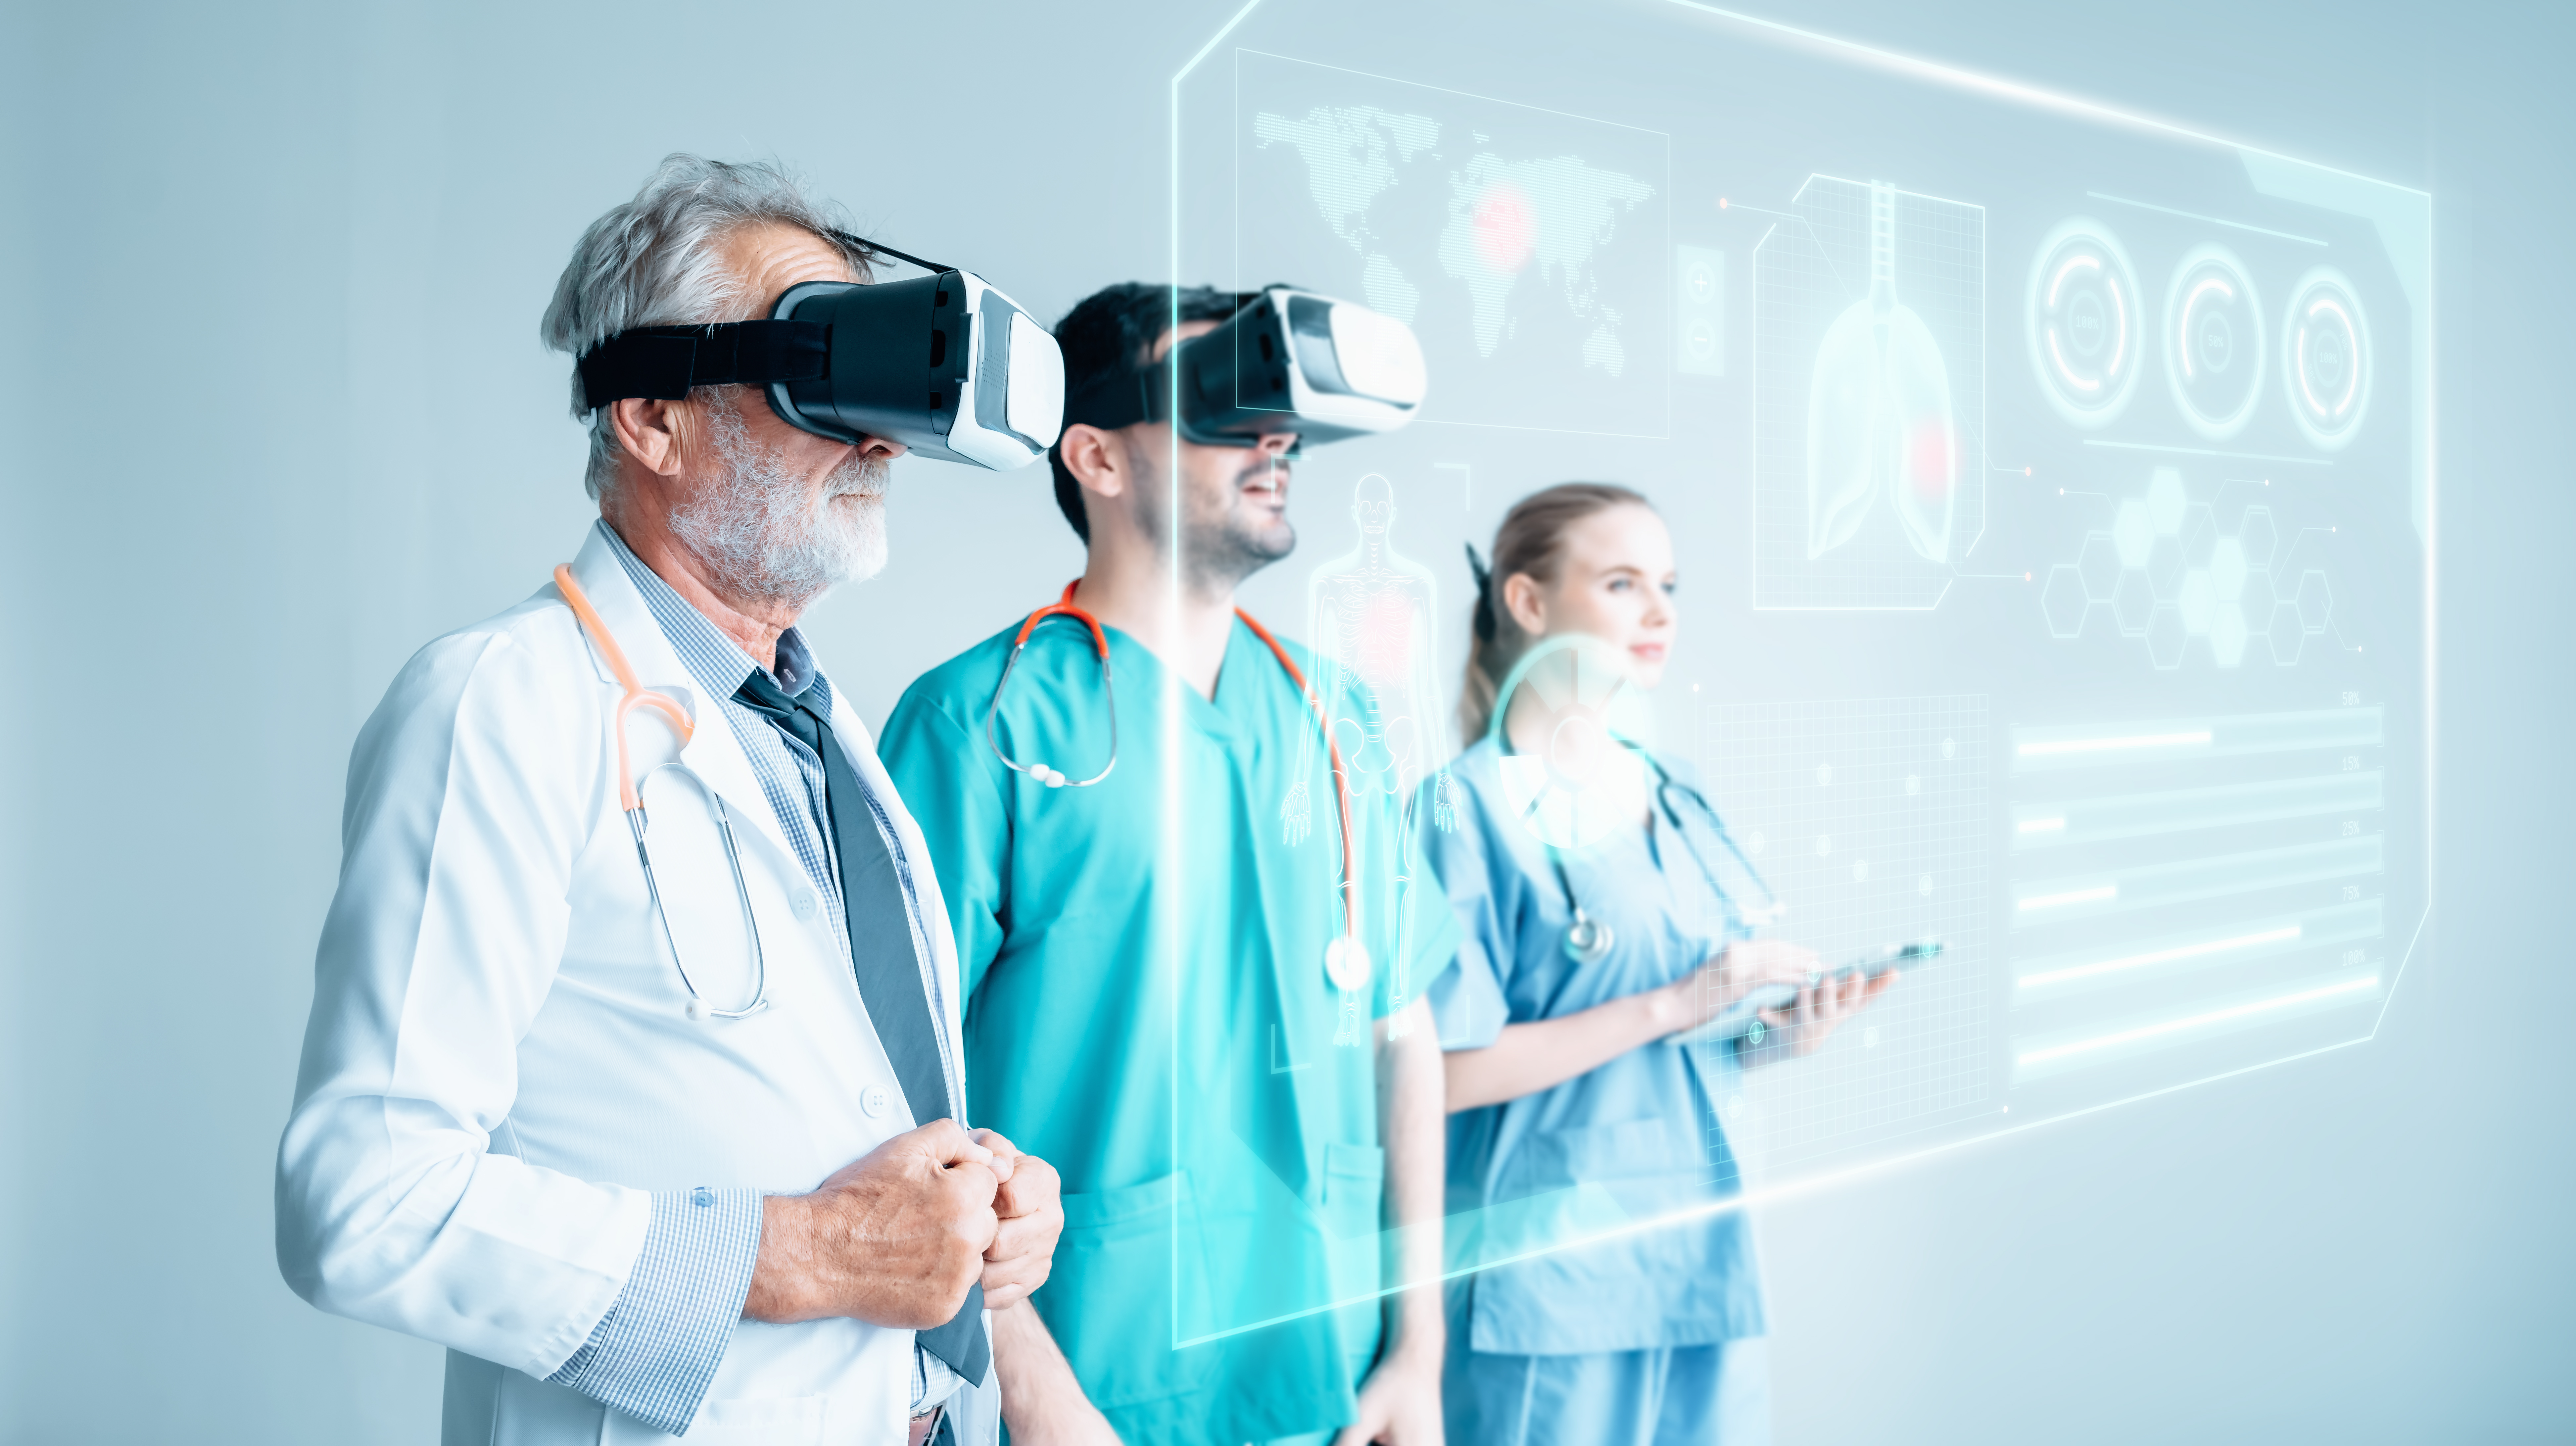 HEALTHCARE TRAINING THROUGH SIMULATION: PRACTICE TO LEARN BETTER